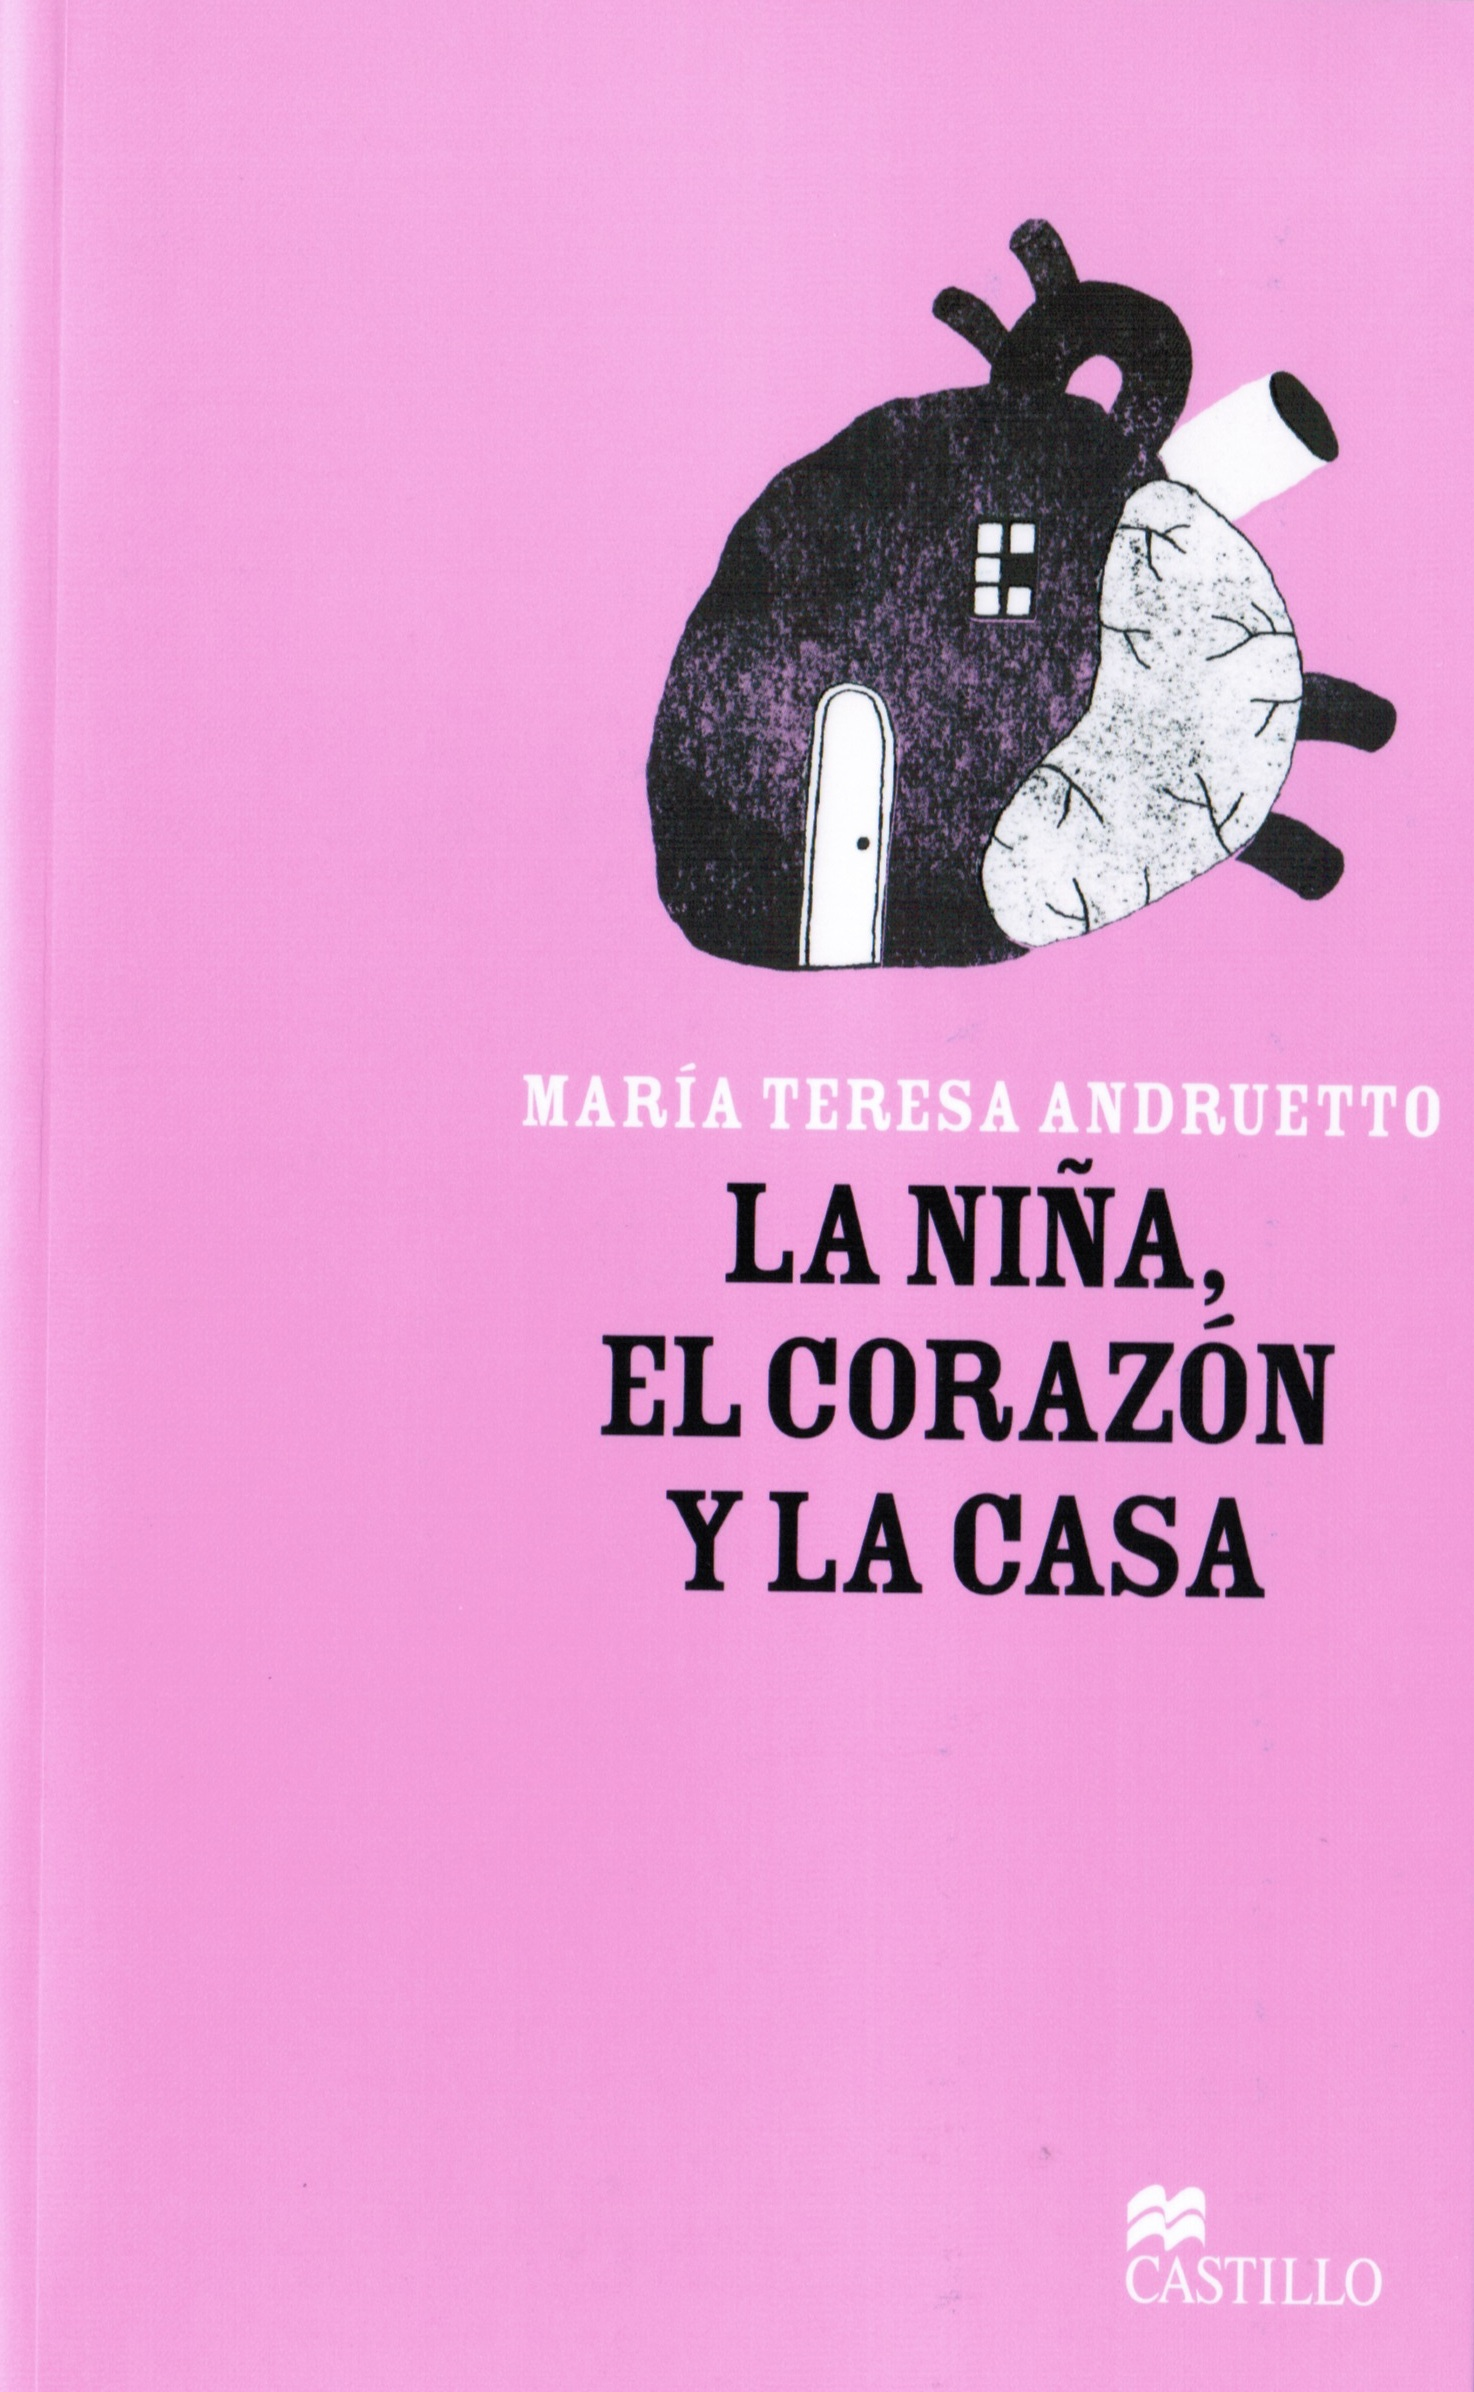 The girl, the heart and the house (La niña, el corazón y la casa)